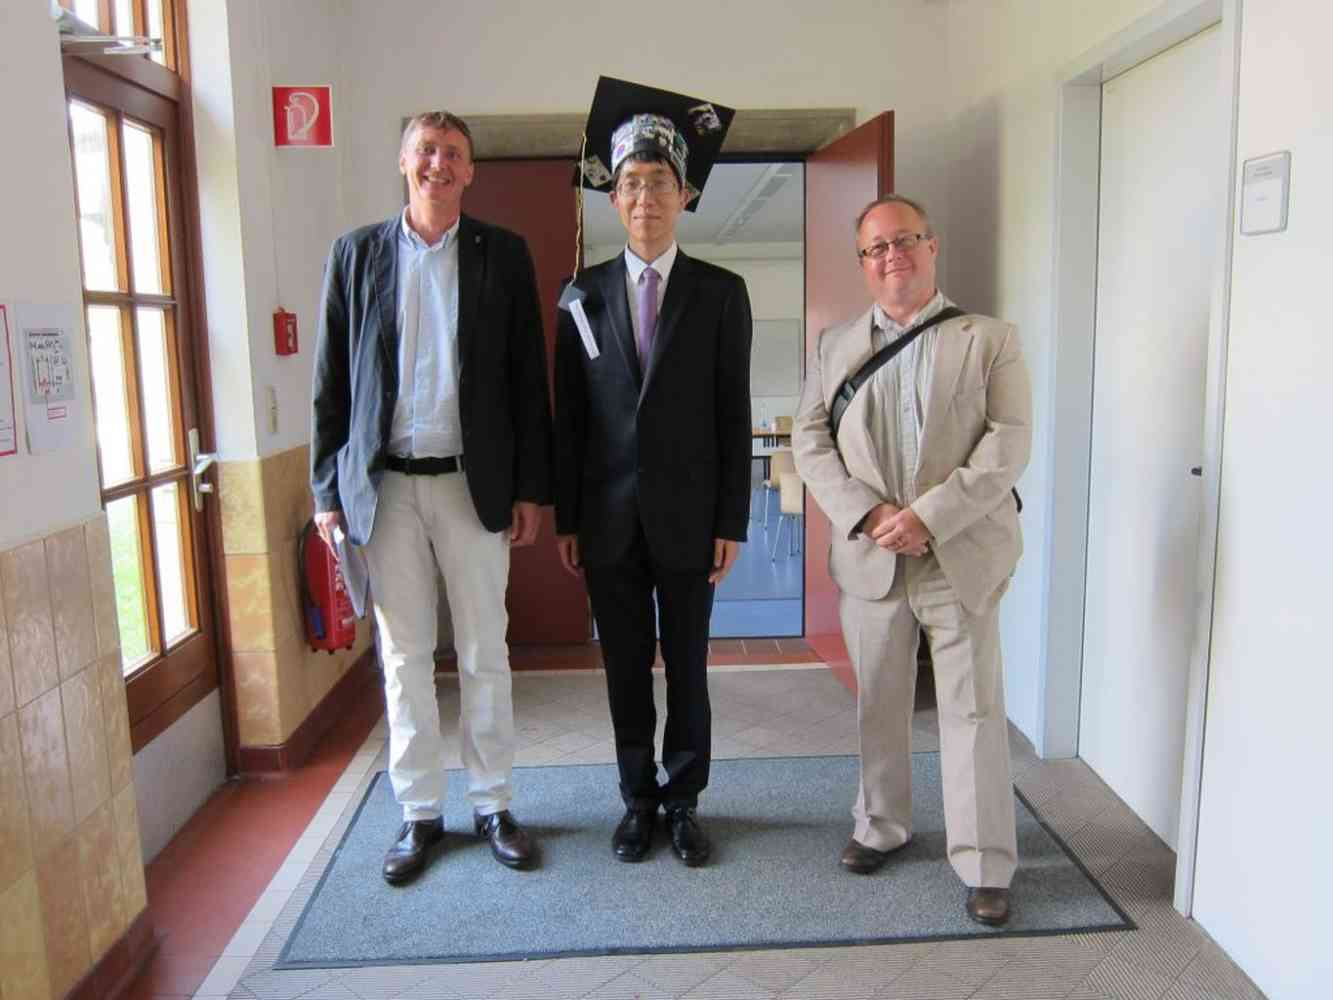 PhD Viva as External Examiner - Jacobs University, Bremen, Germany - Dr. Seung-Hun Lee with Prof. Dr. Nikolai Kuhnert and Dr. Adam Le Gresley